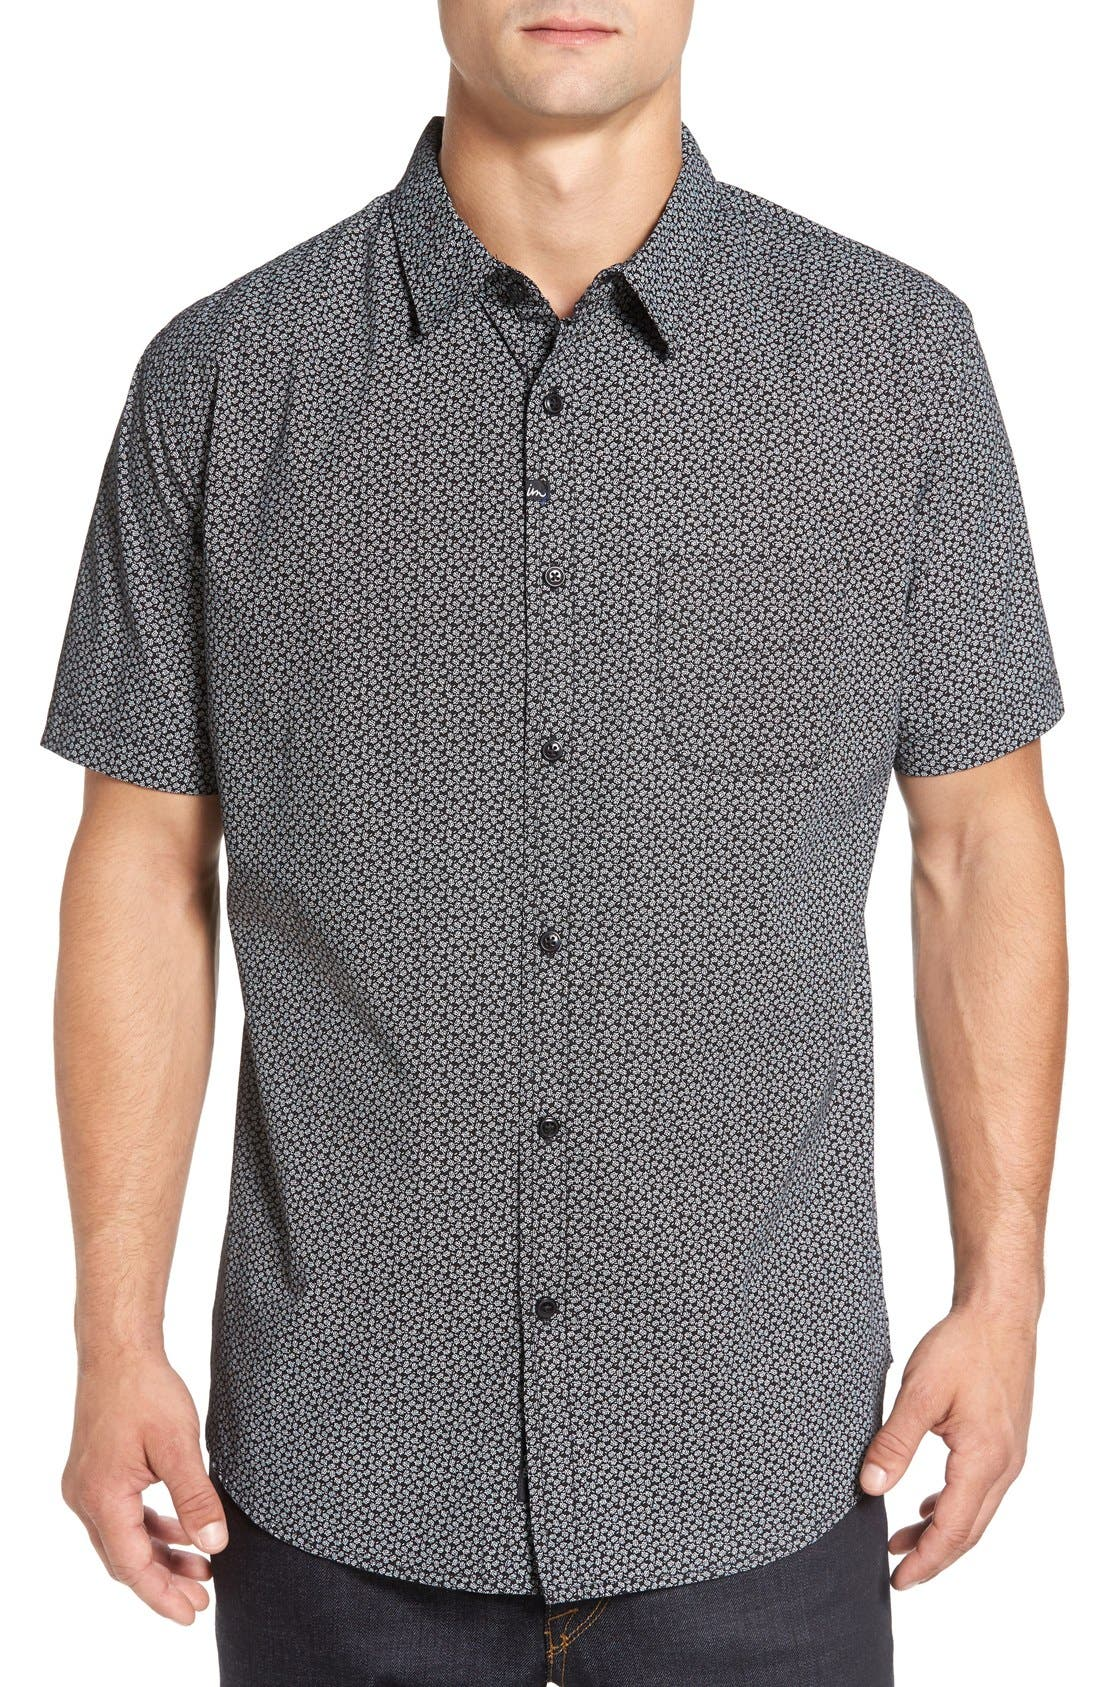 IMPERIAL MOTION 'Branch' Slim Fit Print Short Sleeve